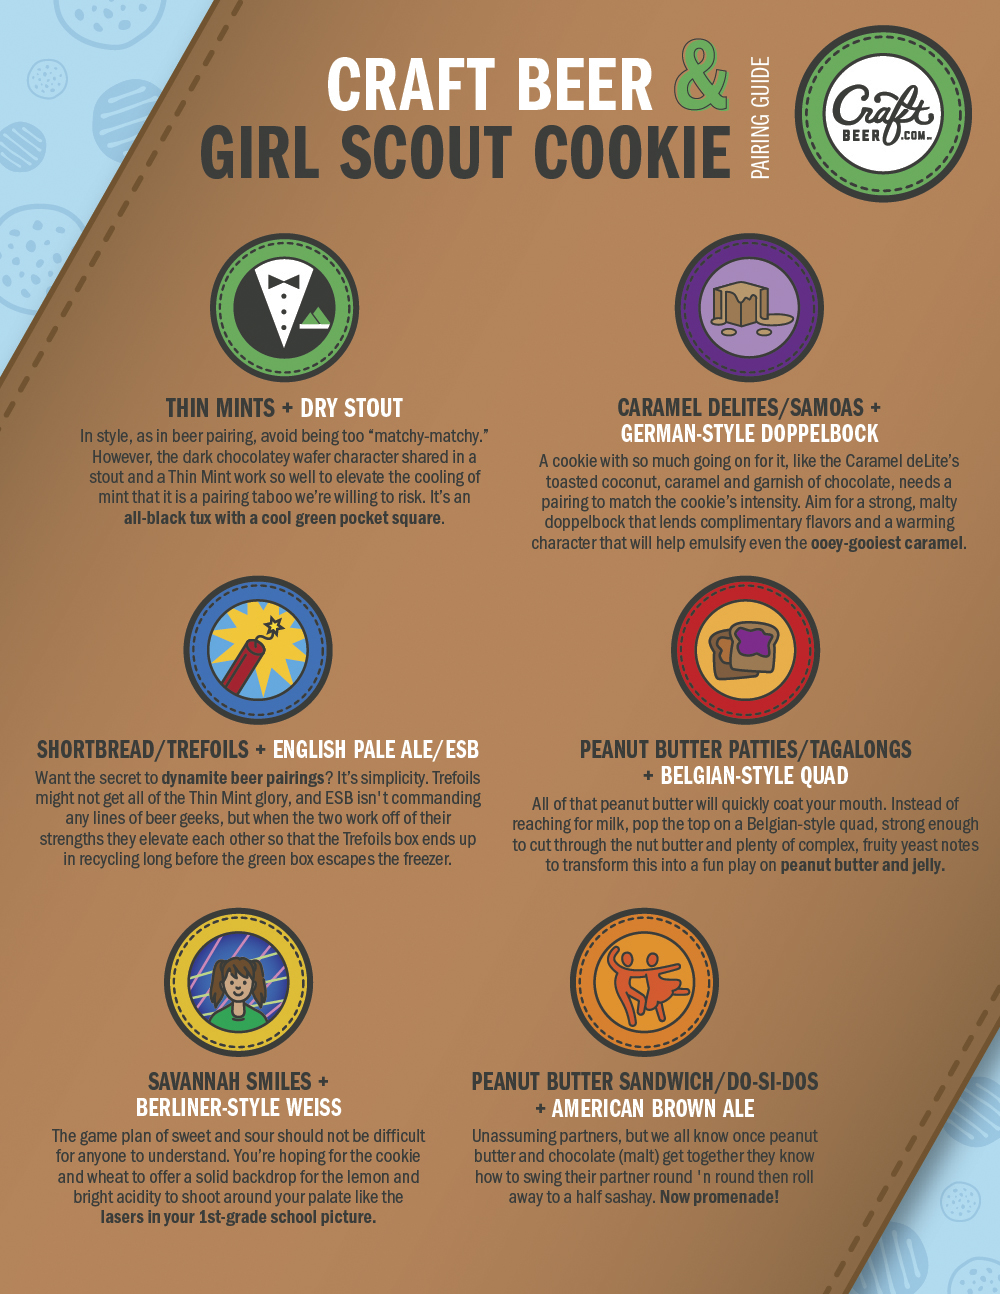 girl scout cookie beer pairing guide graphic